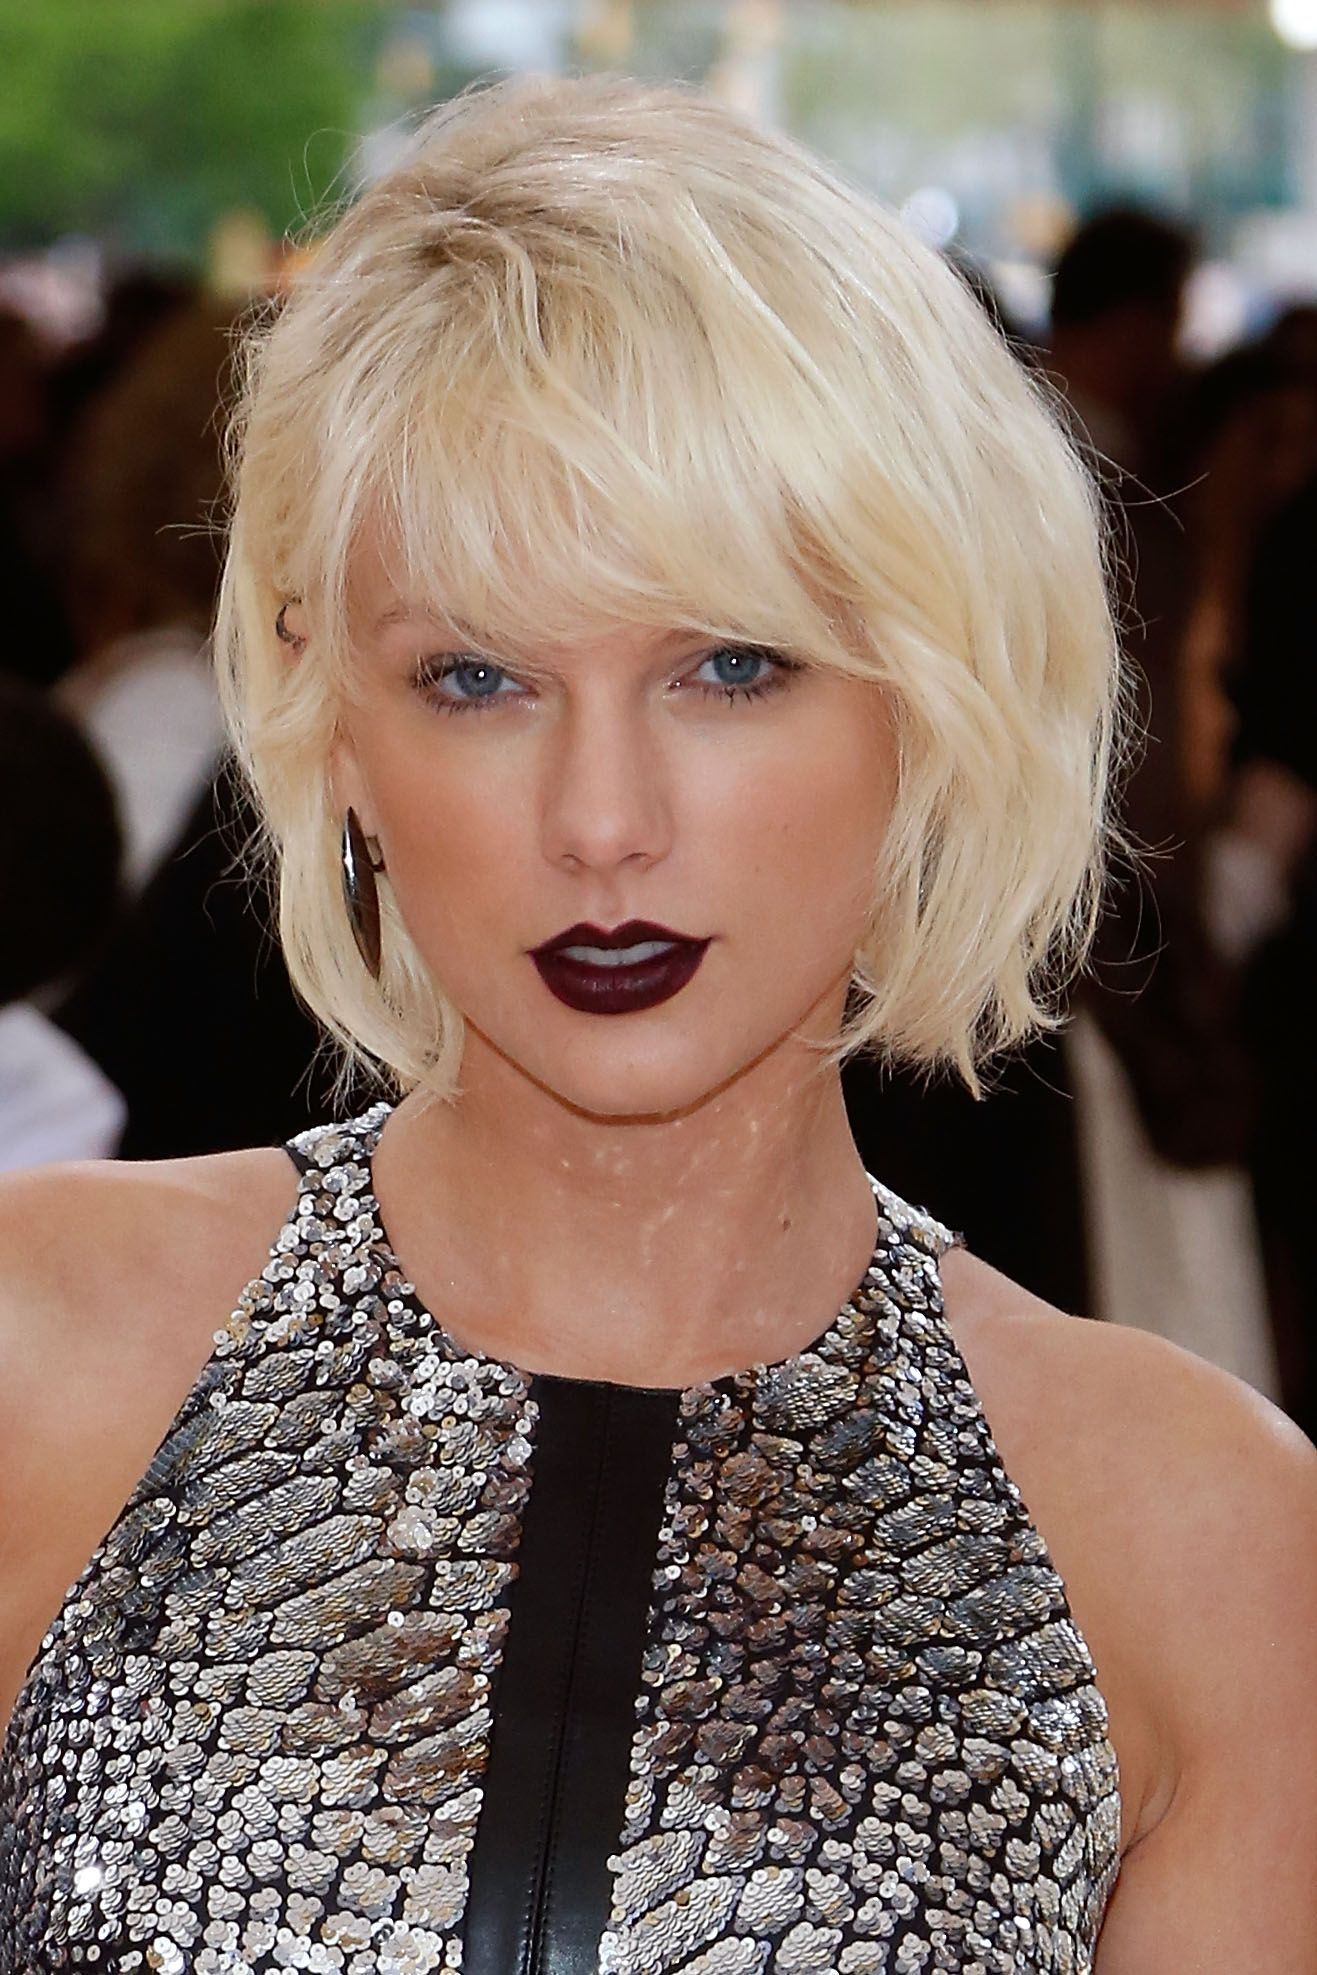 Hairstyles With Bangs Youll Want to Copy Celebrity Haircuts